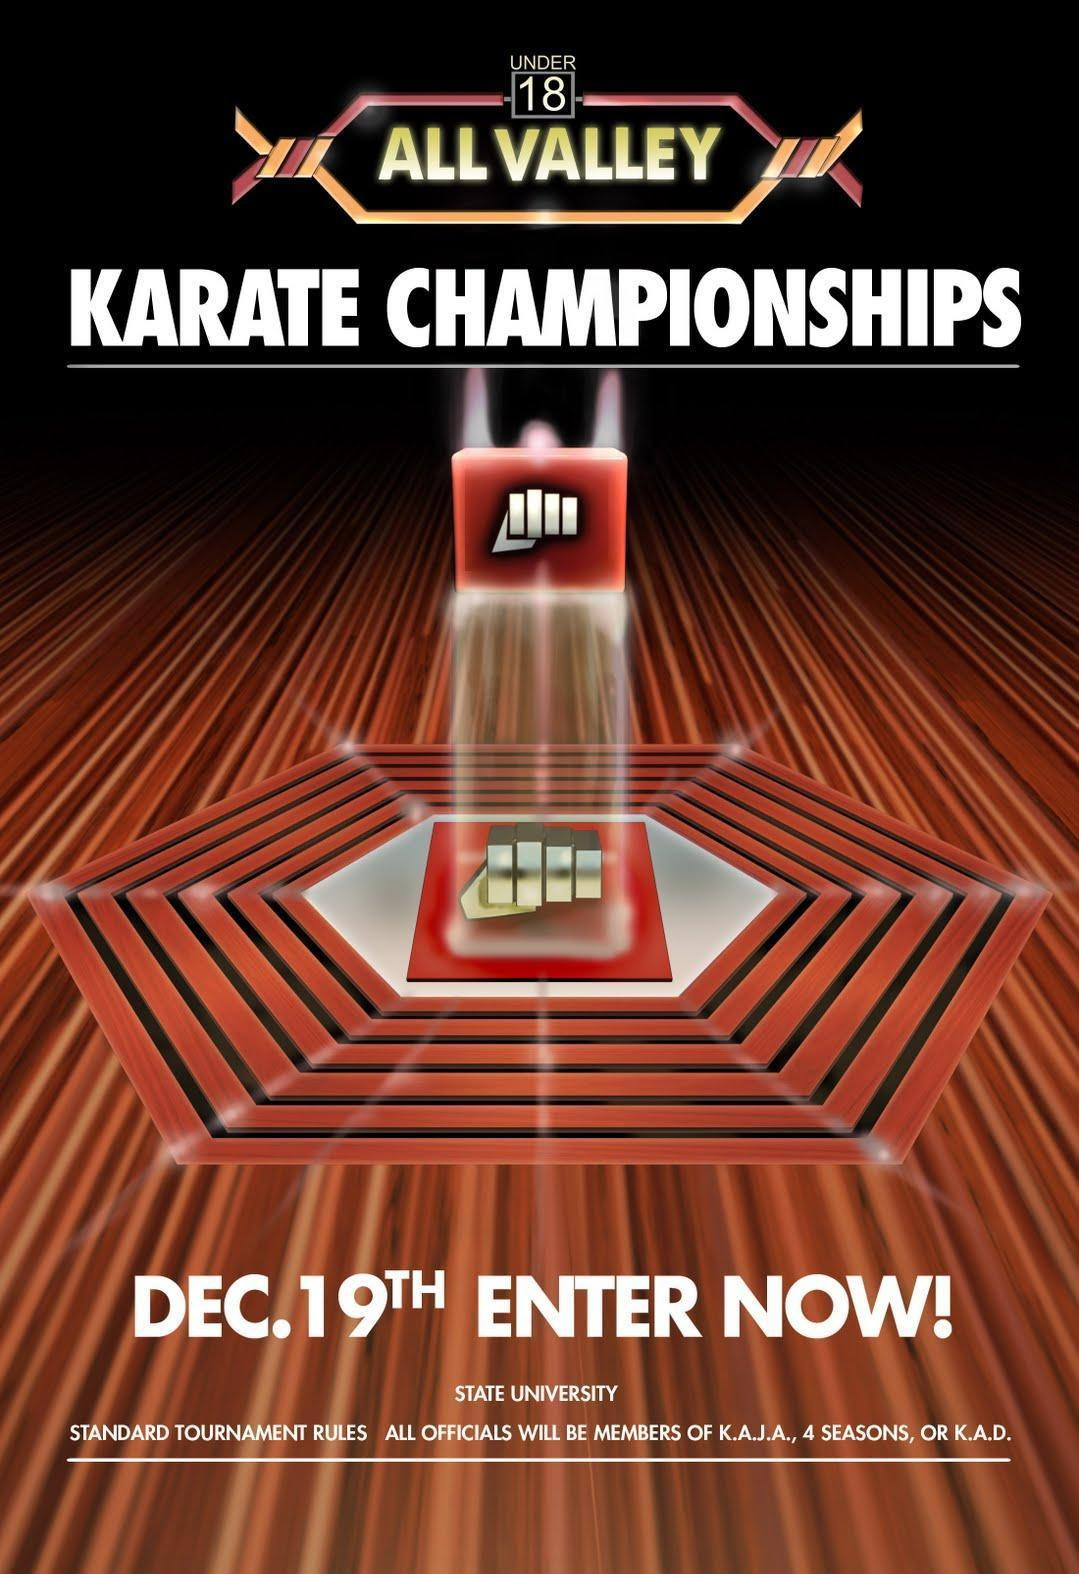 72192 Karate Kid Tournament All Valley From 1984 Movie Decor Wall Print Poster